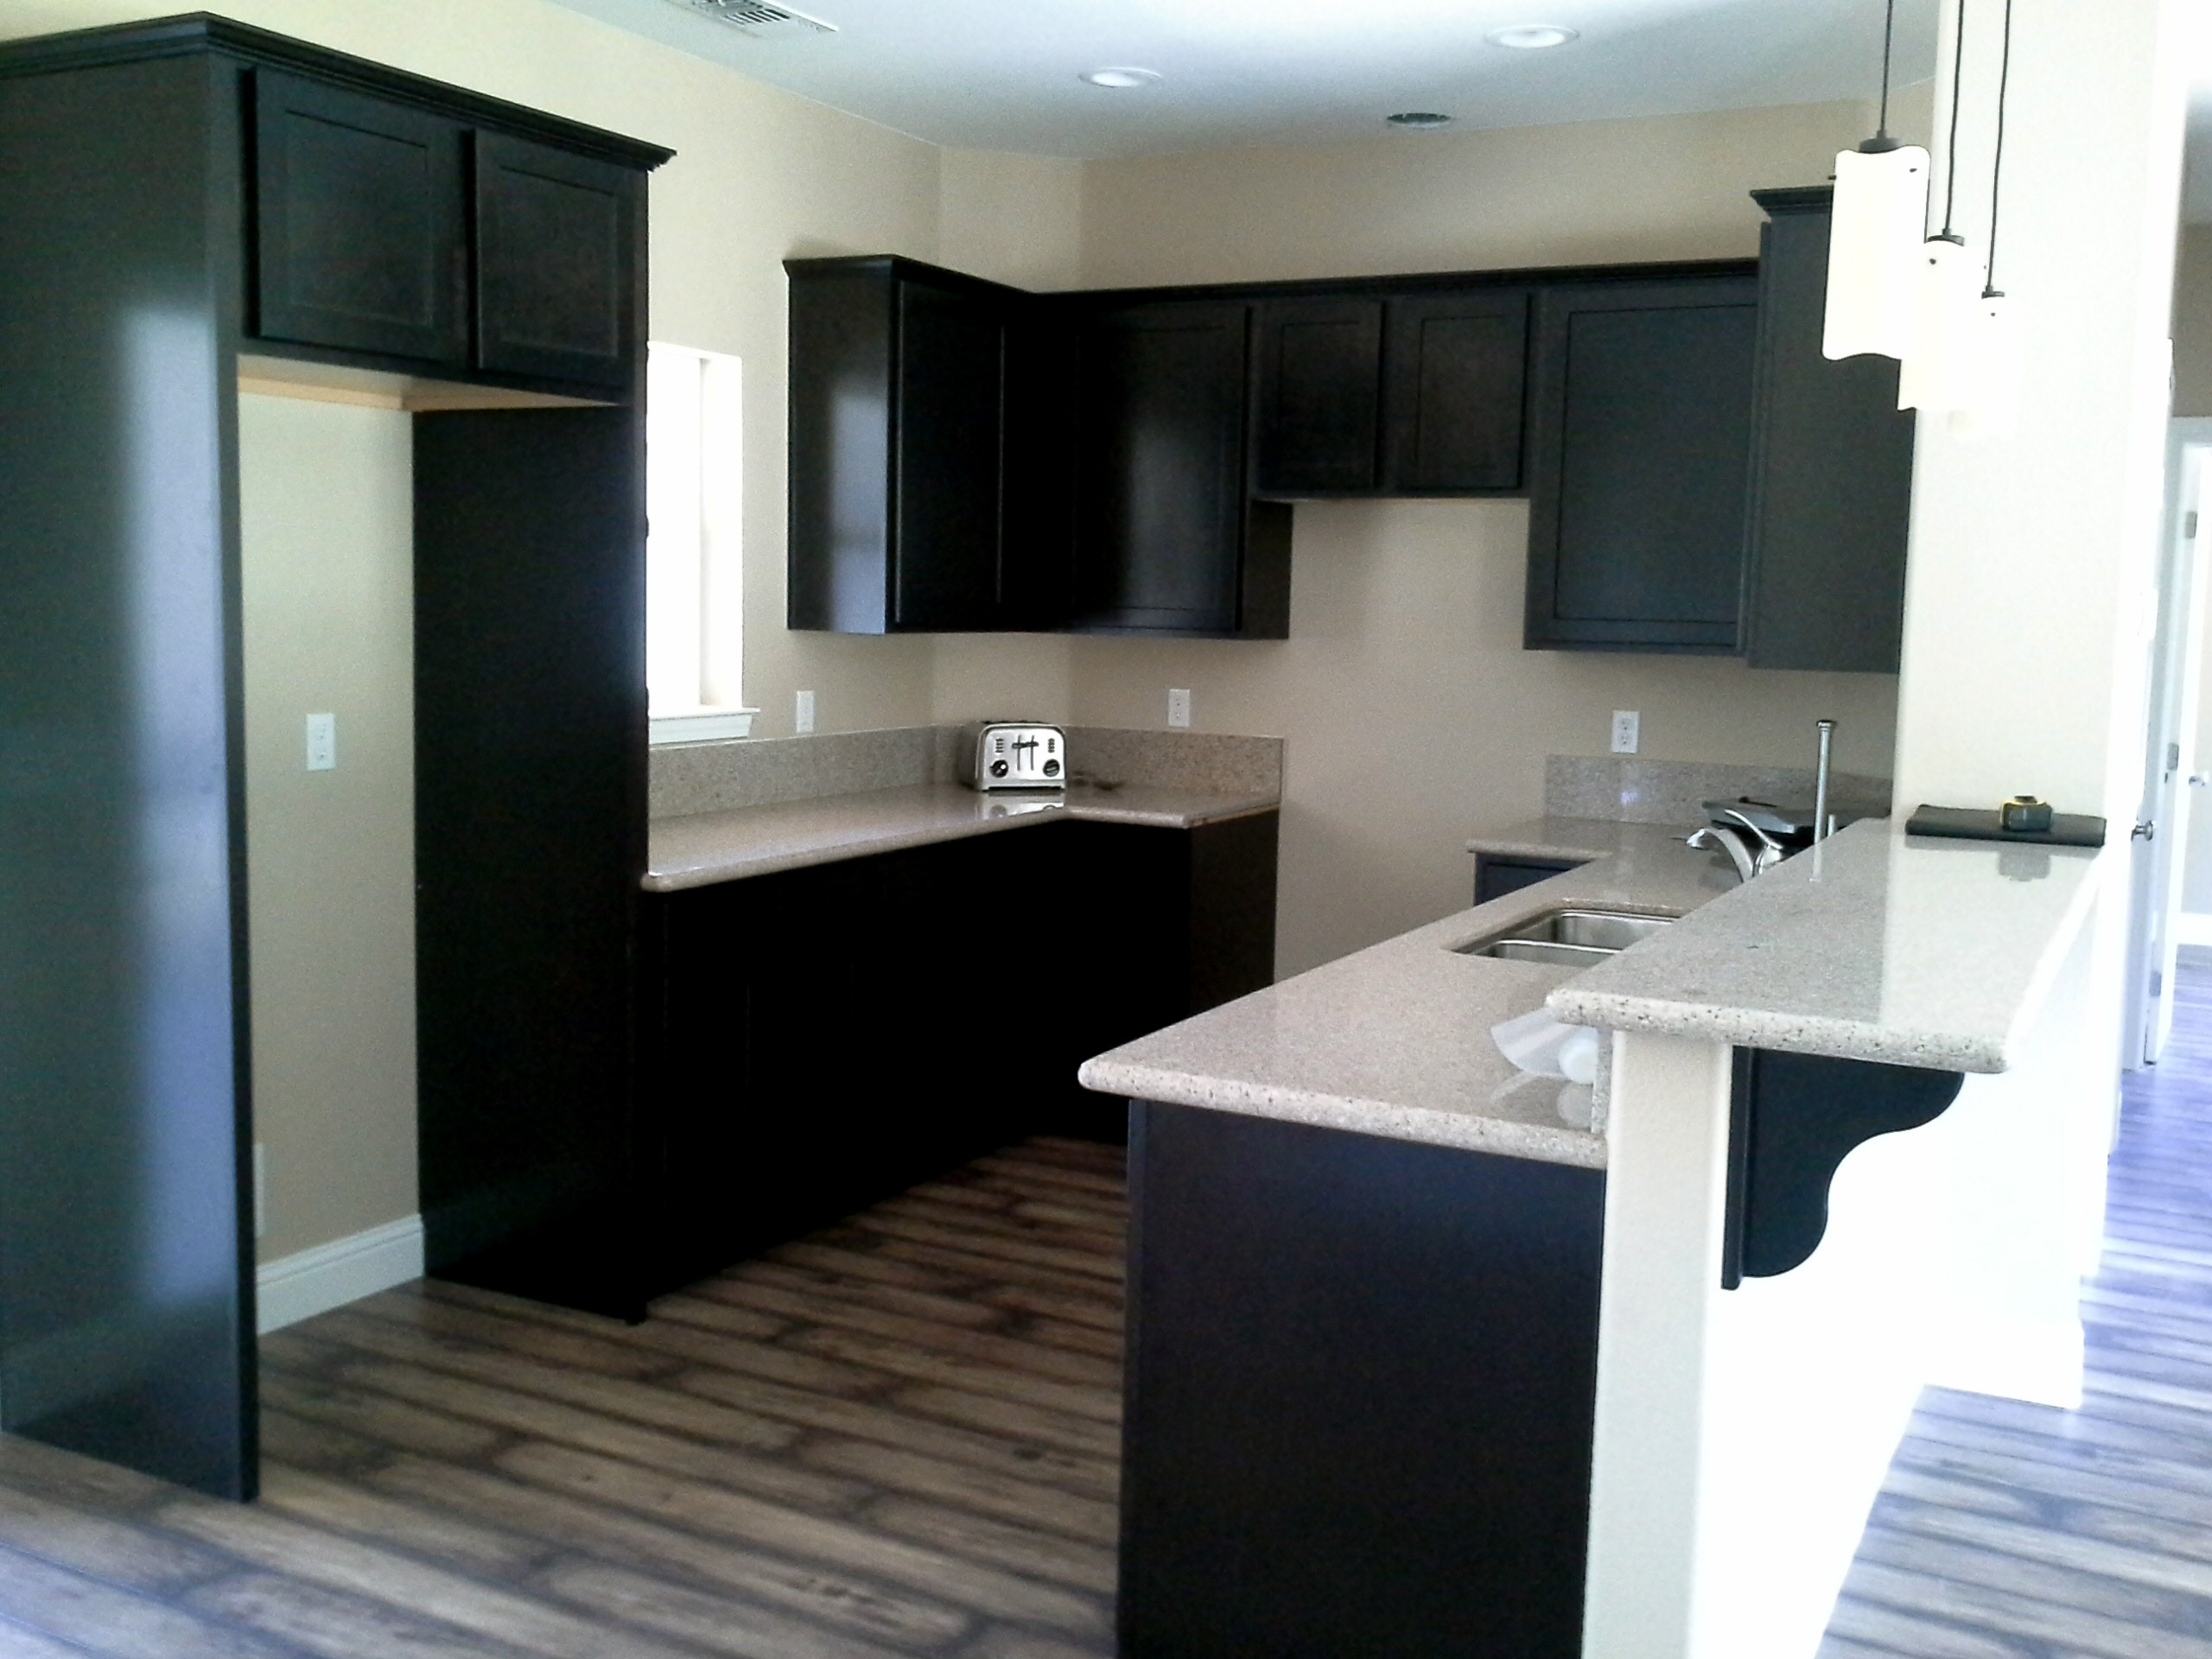 Contemporary kitchen with black cabinets and white countertops